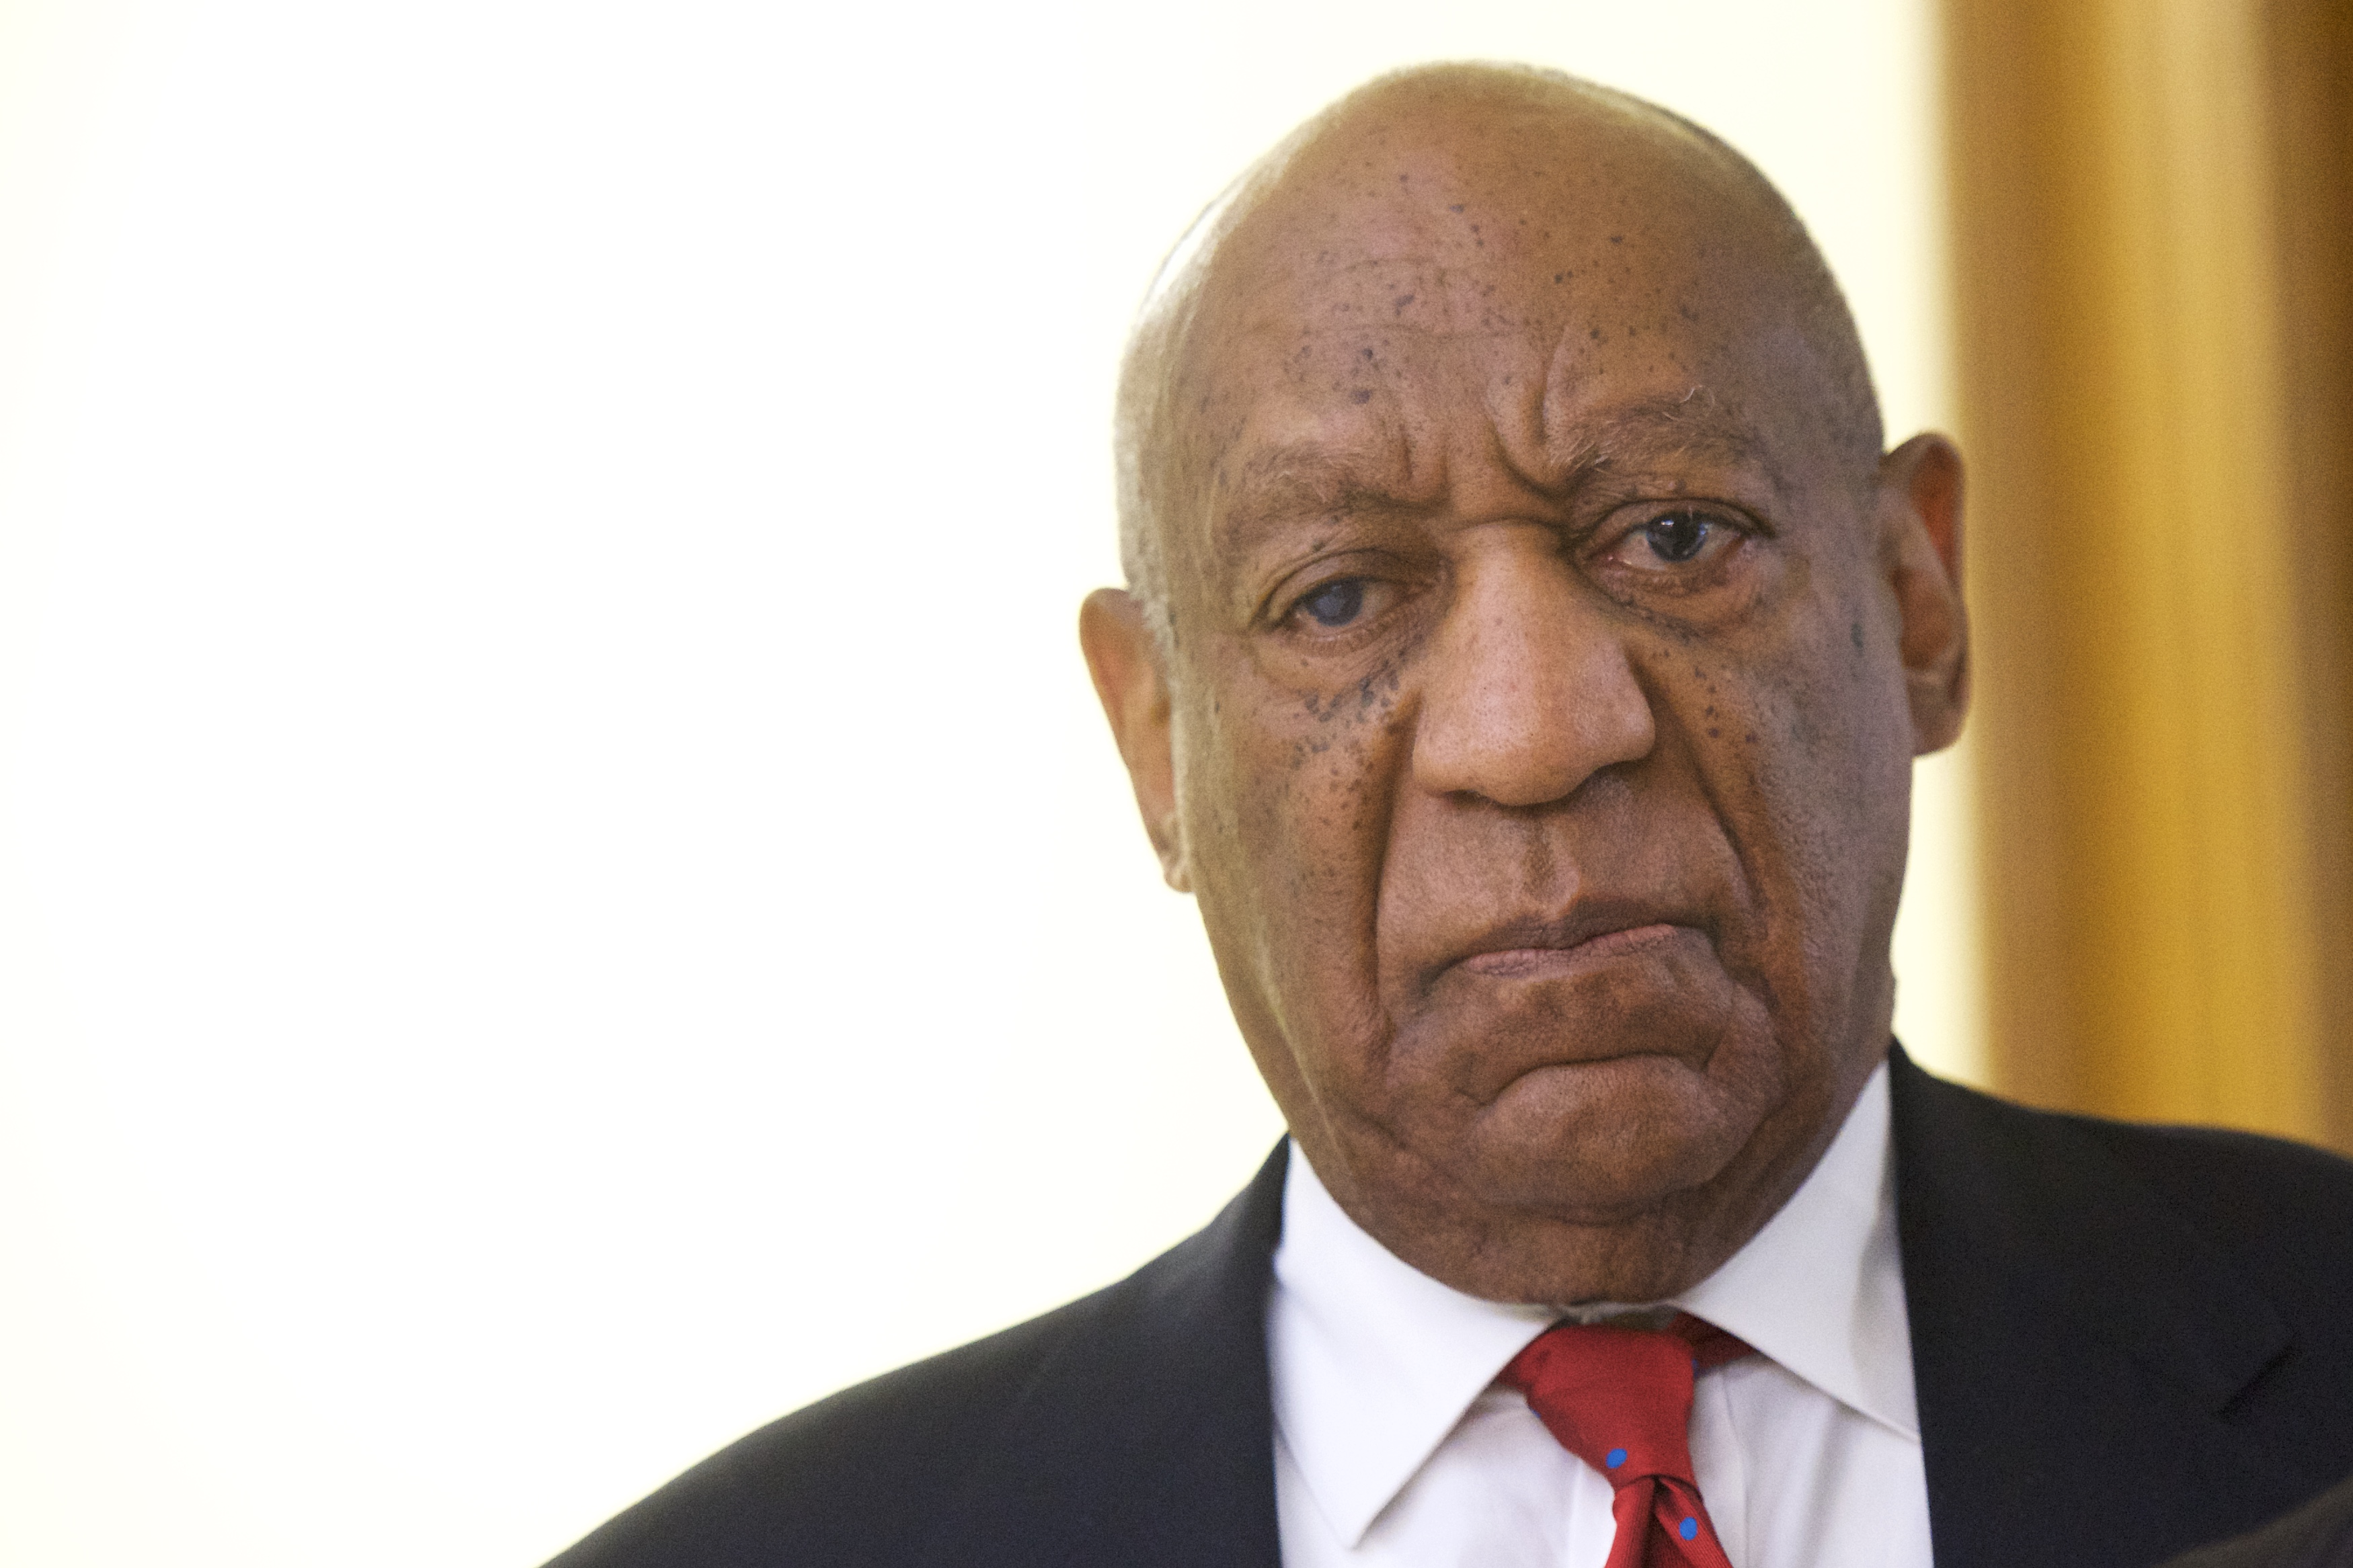 The hypocritical moralizing of Bill Cosby